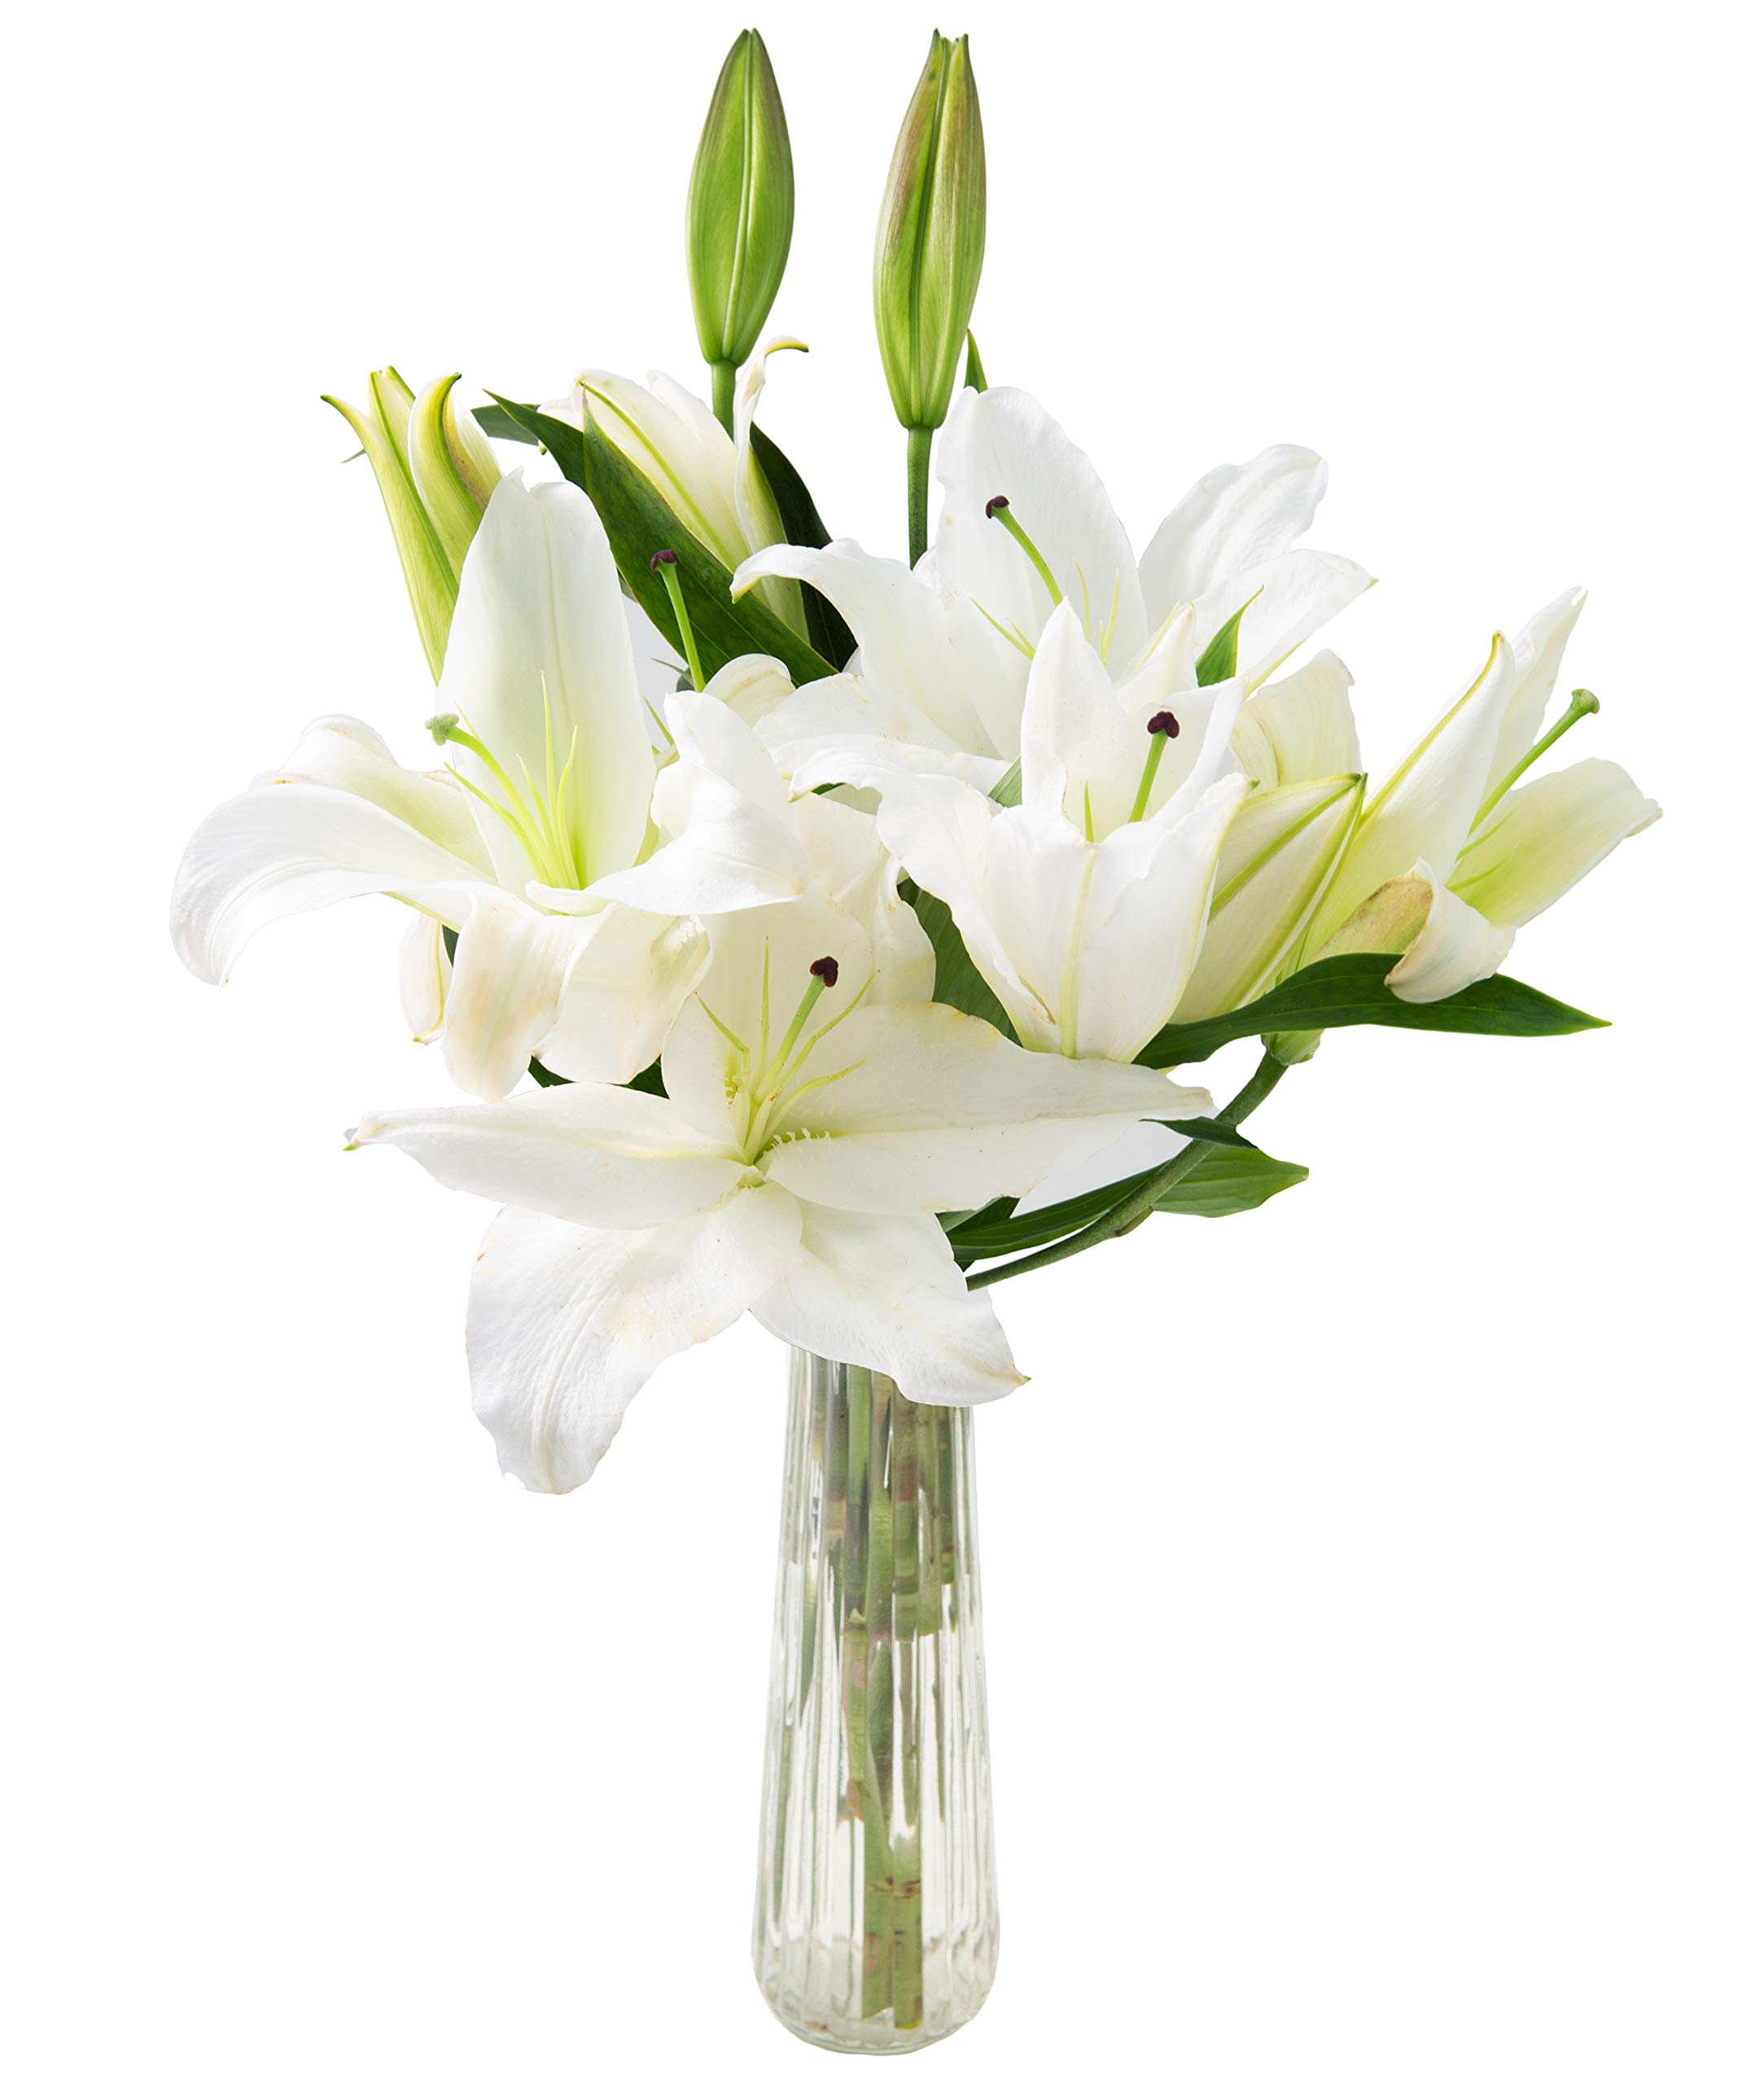 KaBloom Mother's Day Collection: Pure Love Bouquet of Fresh White Lilies with Vase, 5 count